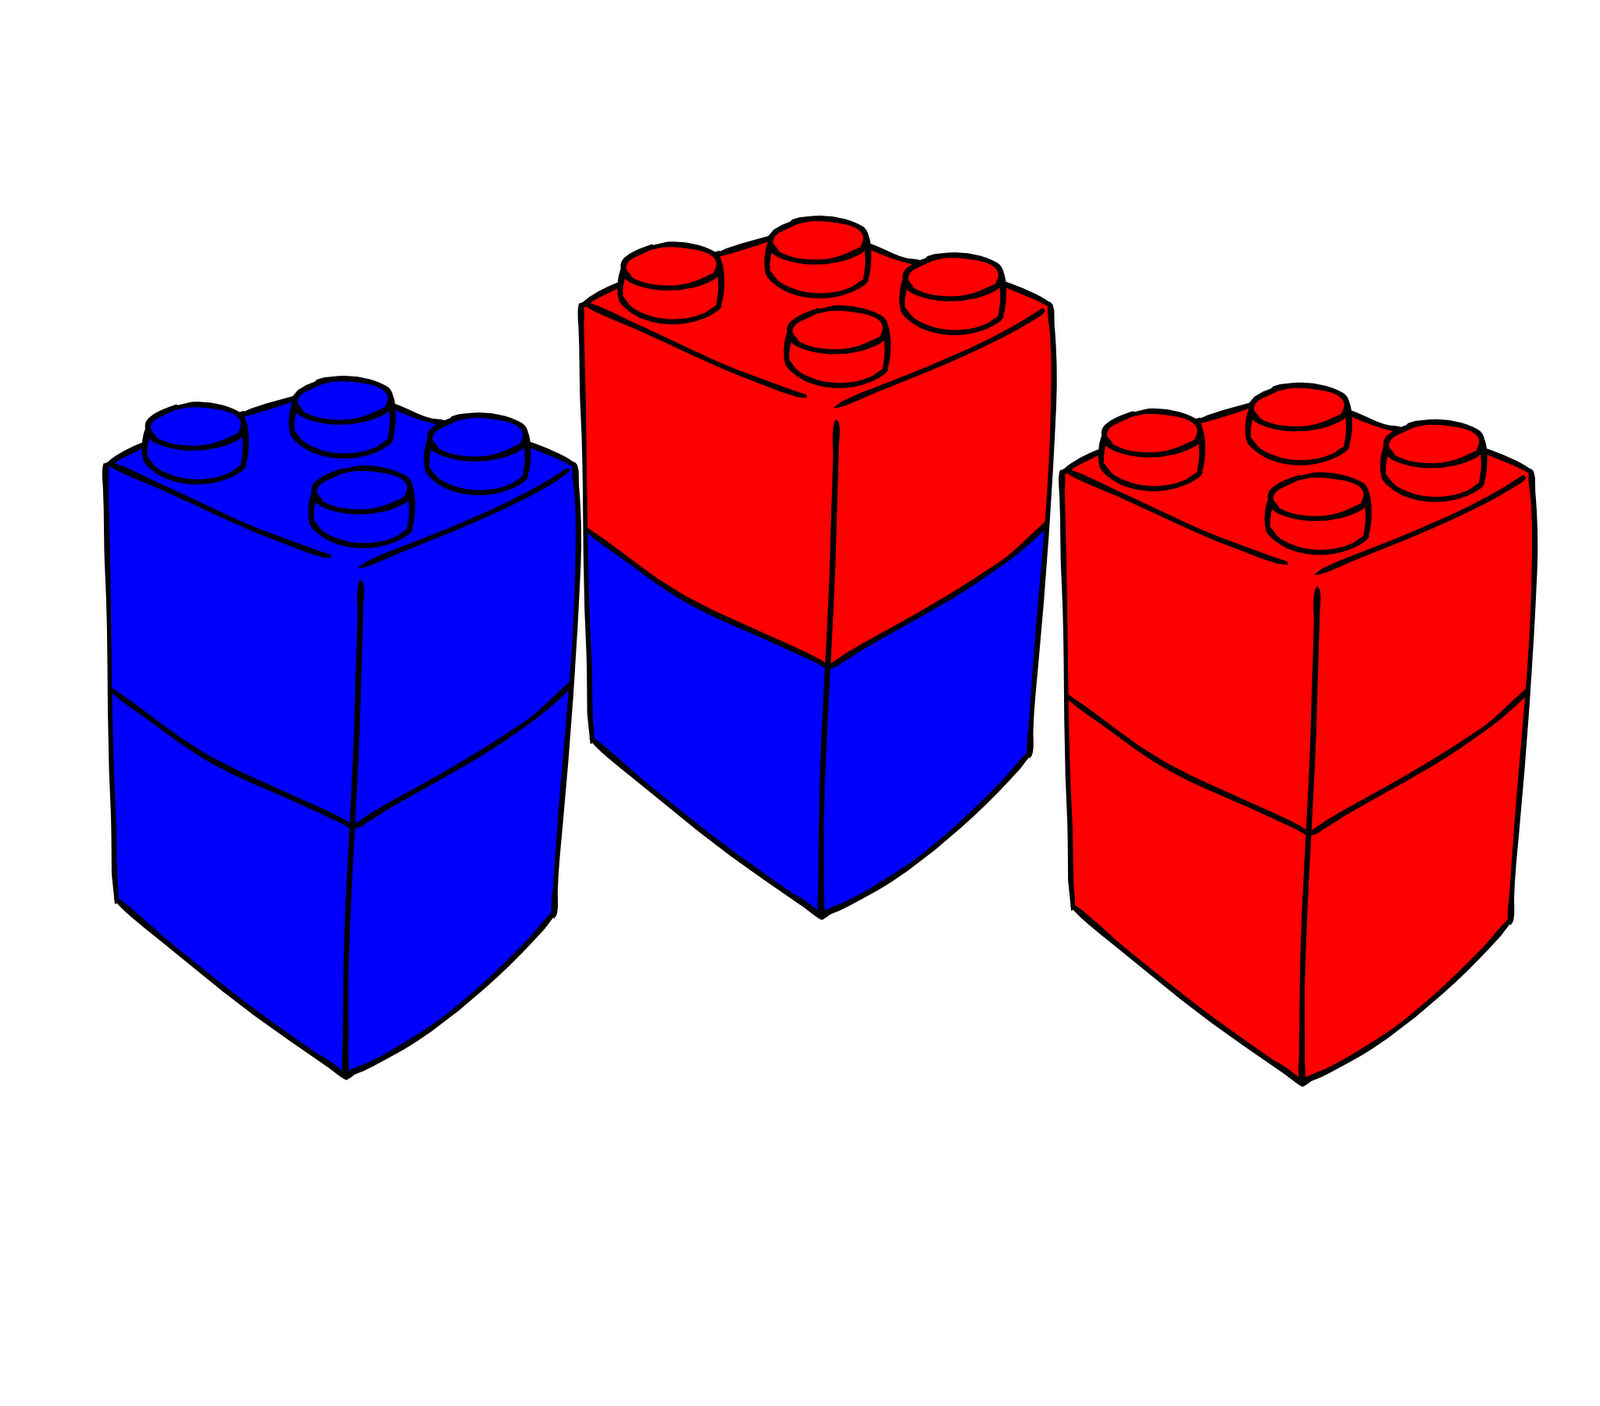 According To This Creationist Argument There Must Be A Stack Of One Red Brick And Blue Fill In The Gap